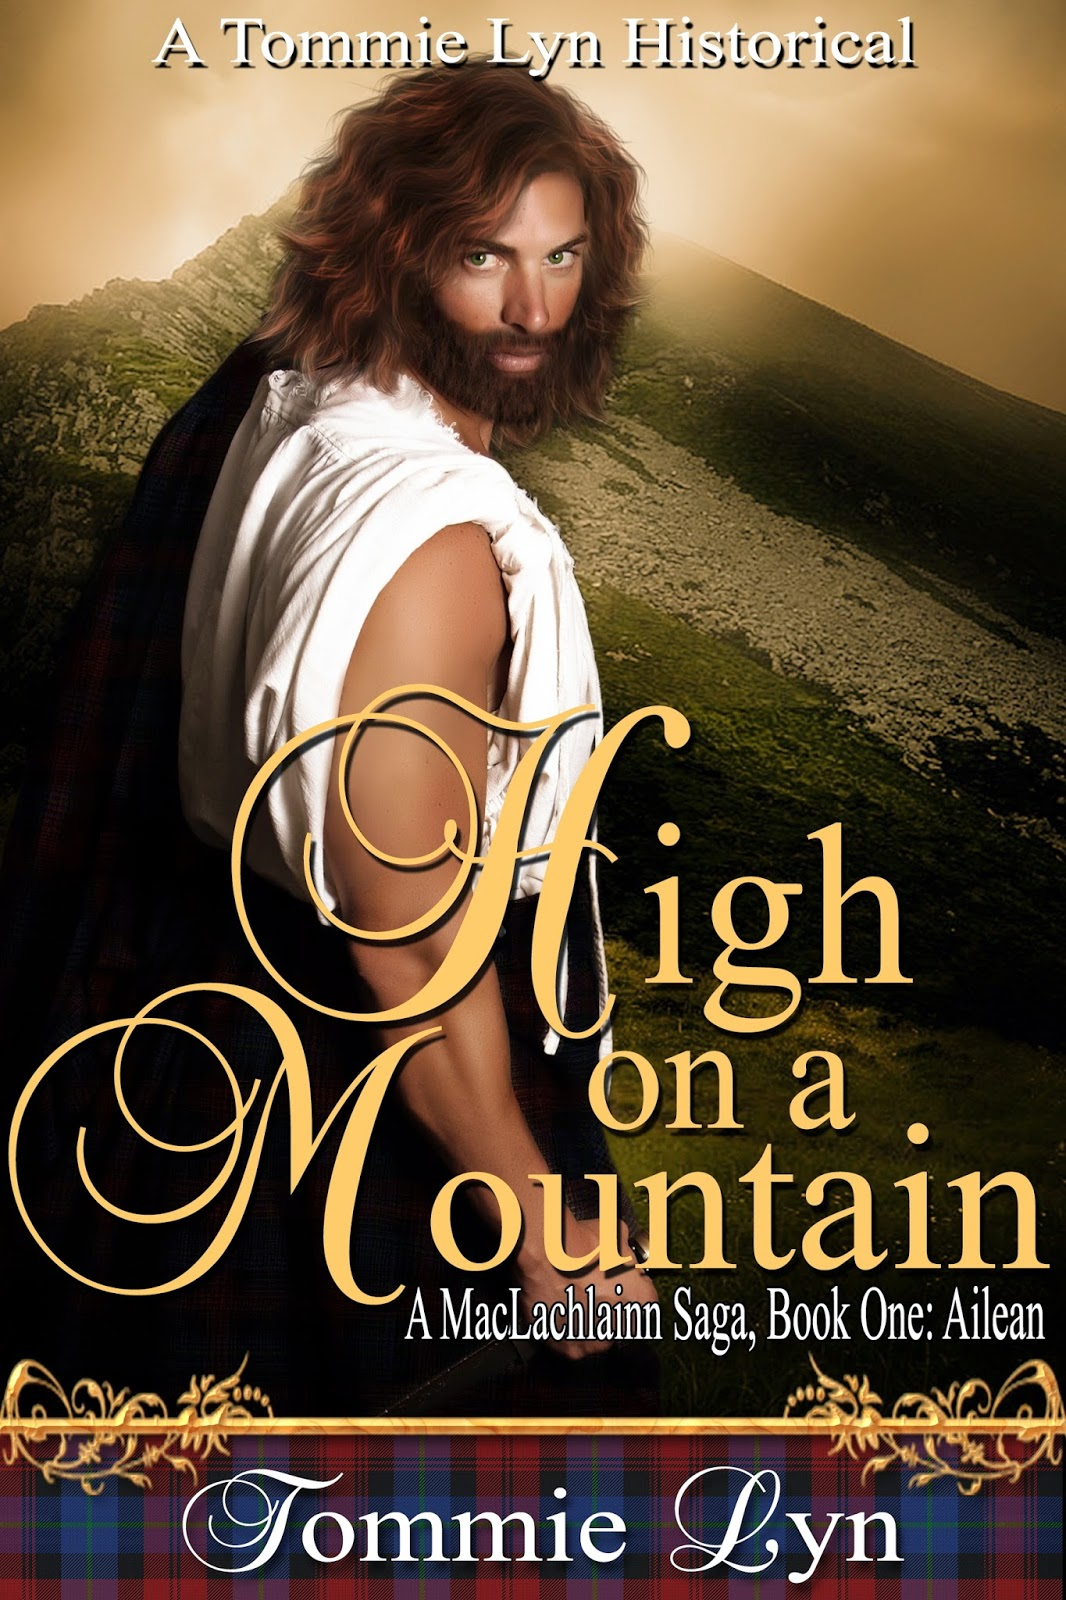 http://www.amazon.com/High-Mountain-Book-Ailean-MacLachlainn-ebook/dp/B0042X9ACA/ref=pd_sim_sbs_kstore_4